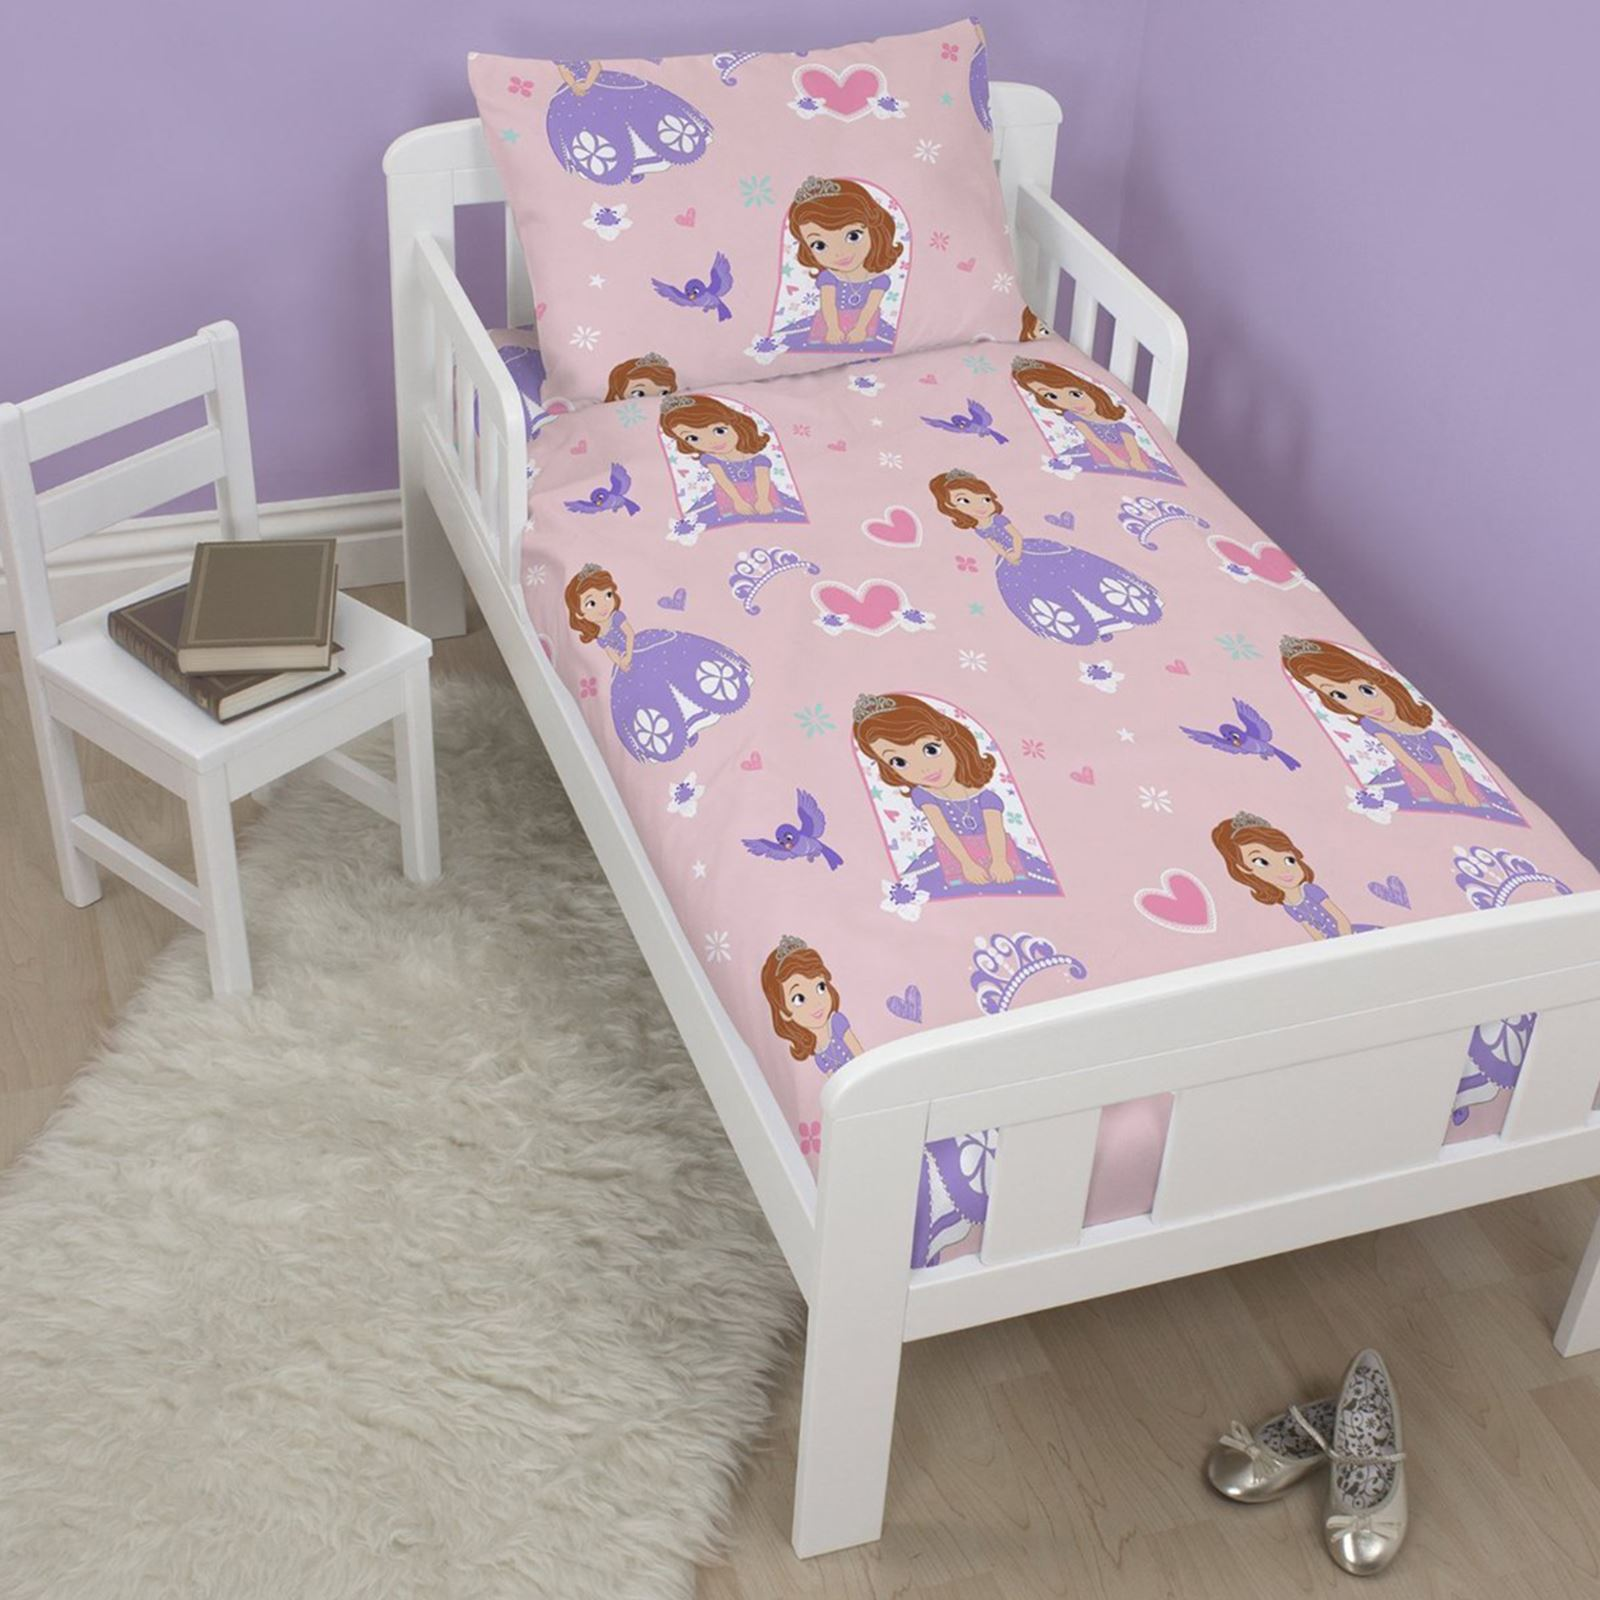 Sofia The First Throw And Pillow Set : SOFIA THE FIRST ACADEMY 4 IN 1 JUNIOR ROTARY BEDDING SET DUVET PILLOW & COVERS eBay